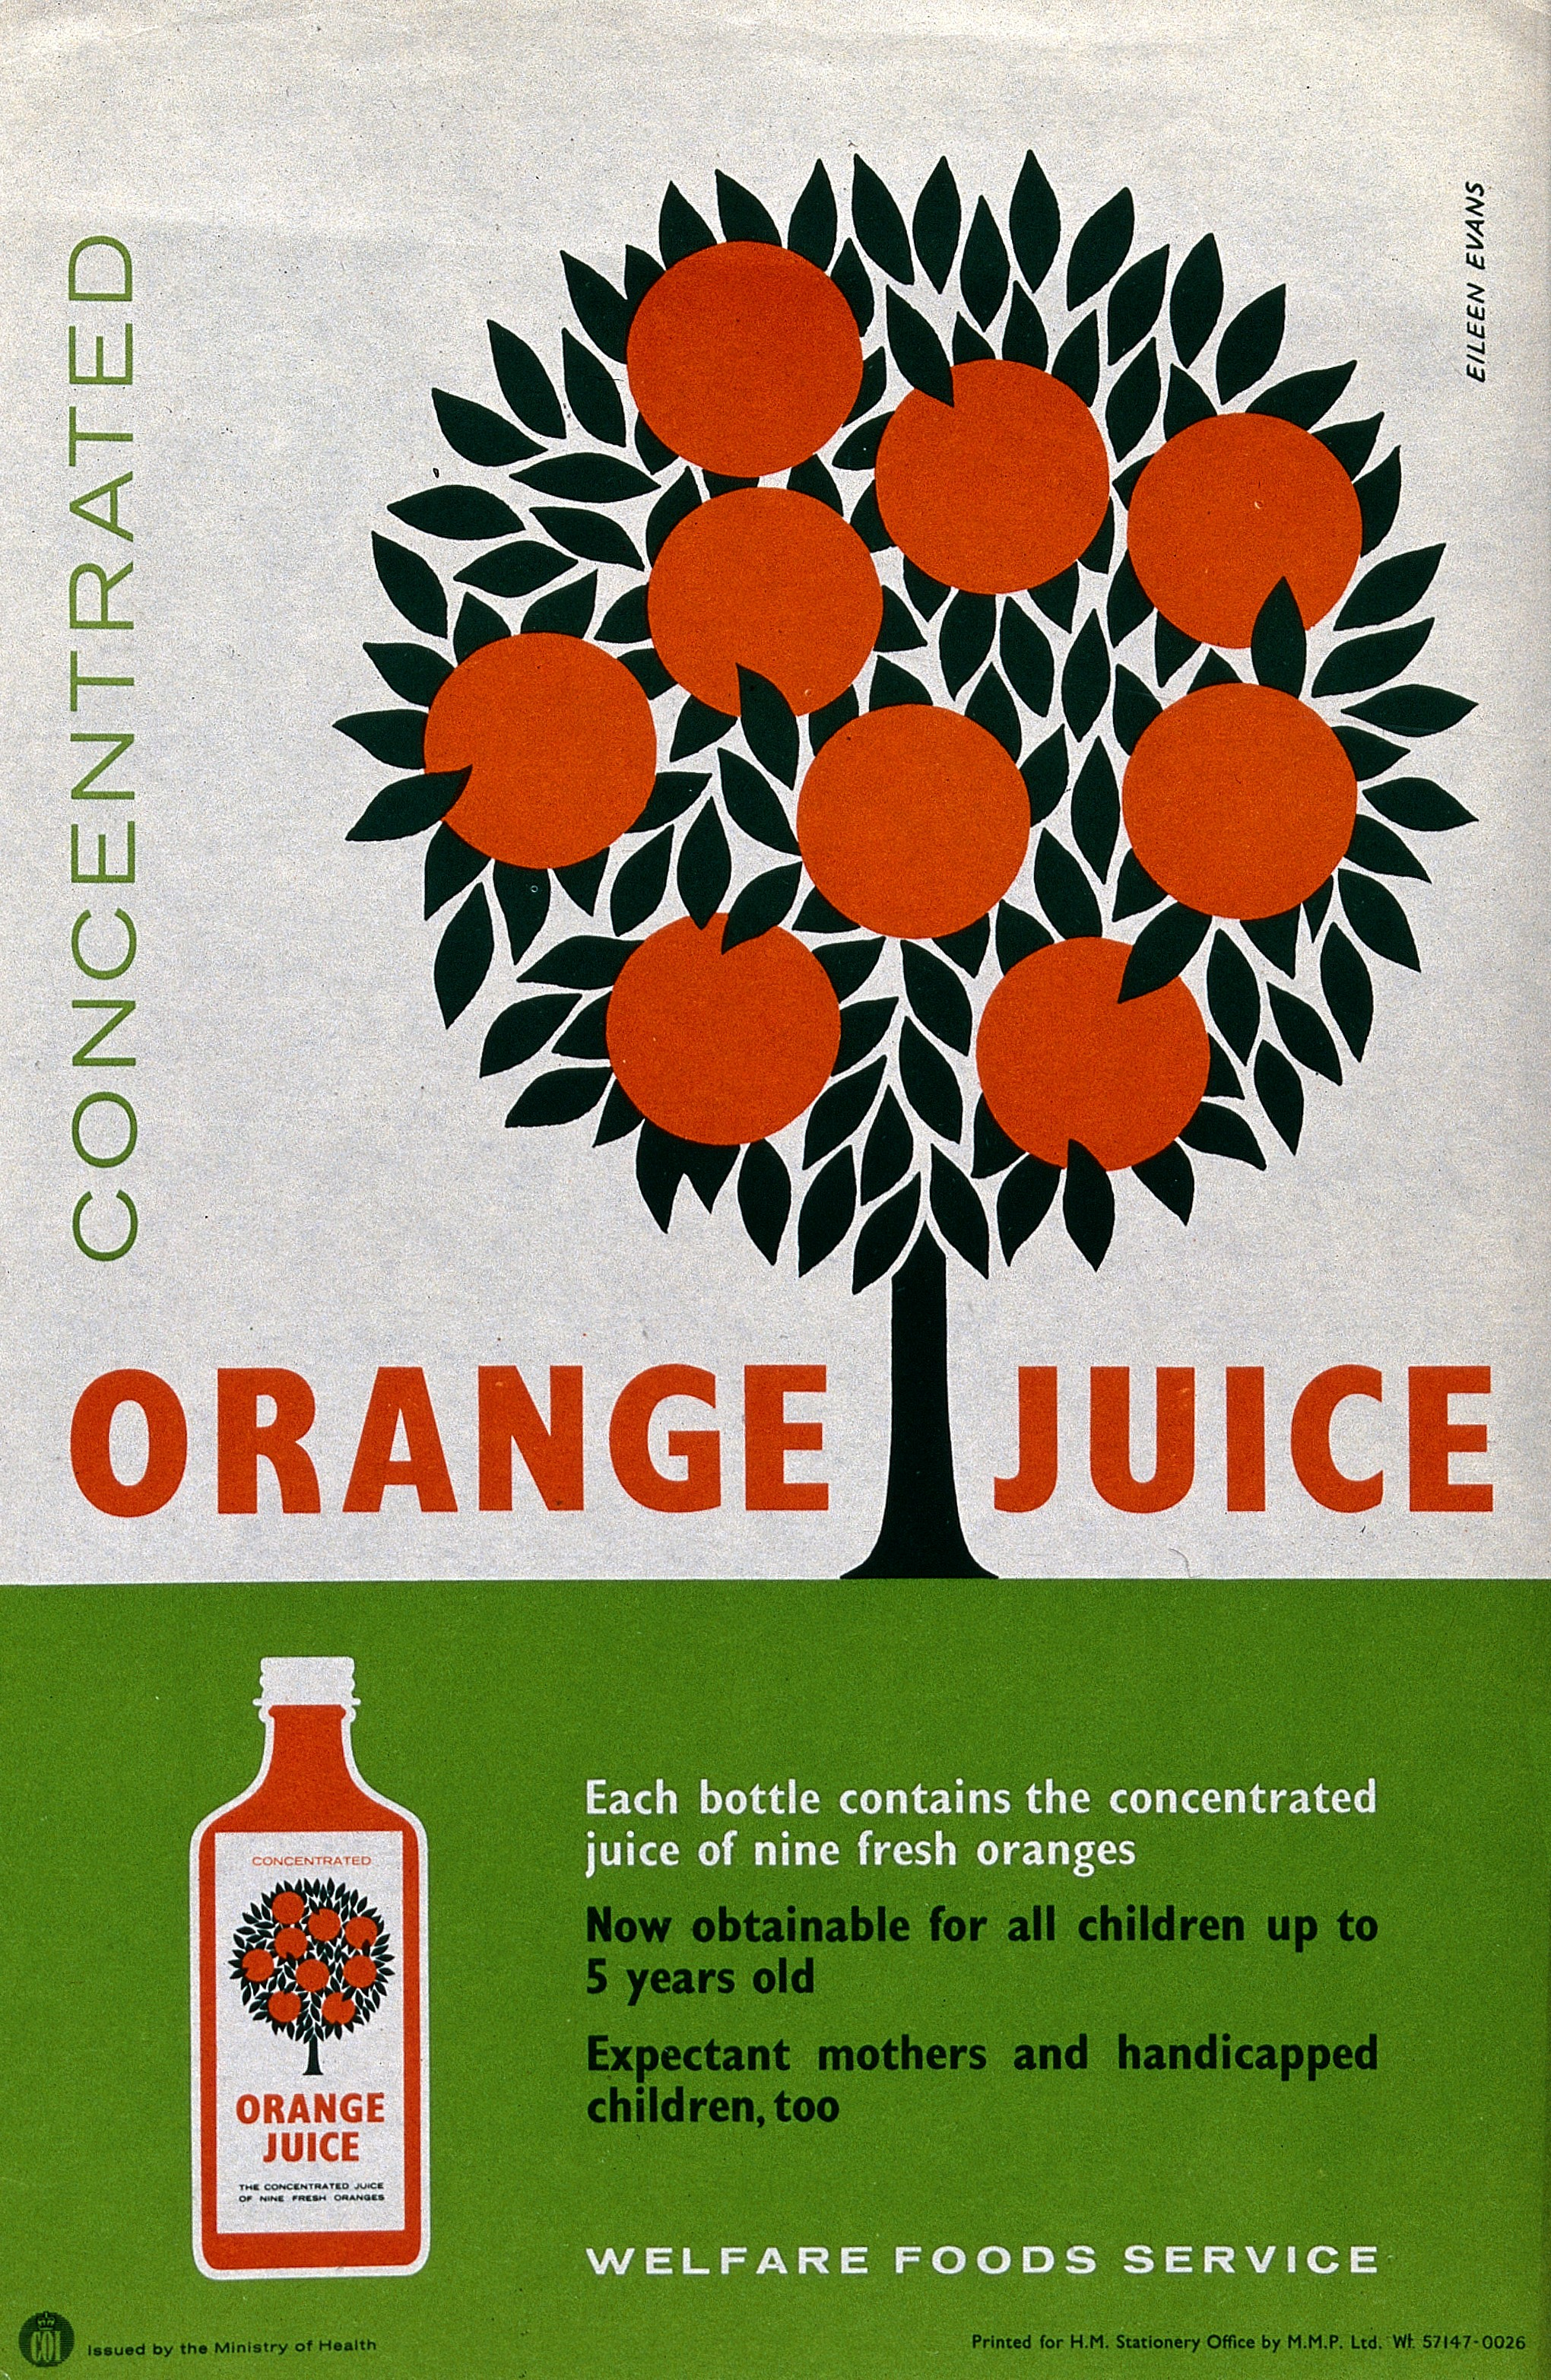 Leaflet showing oranges on a tree and explaining how orange juice contains vitamins.